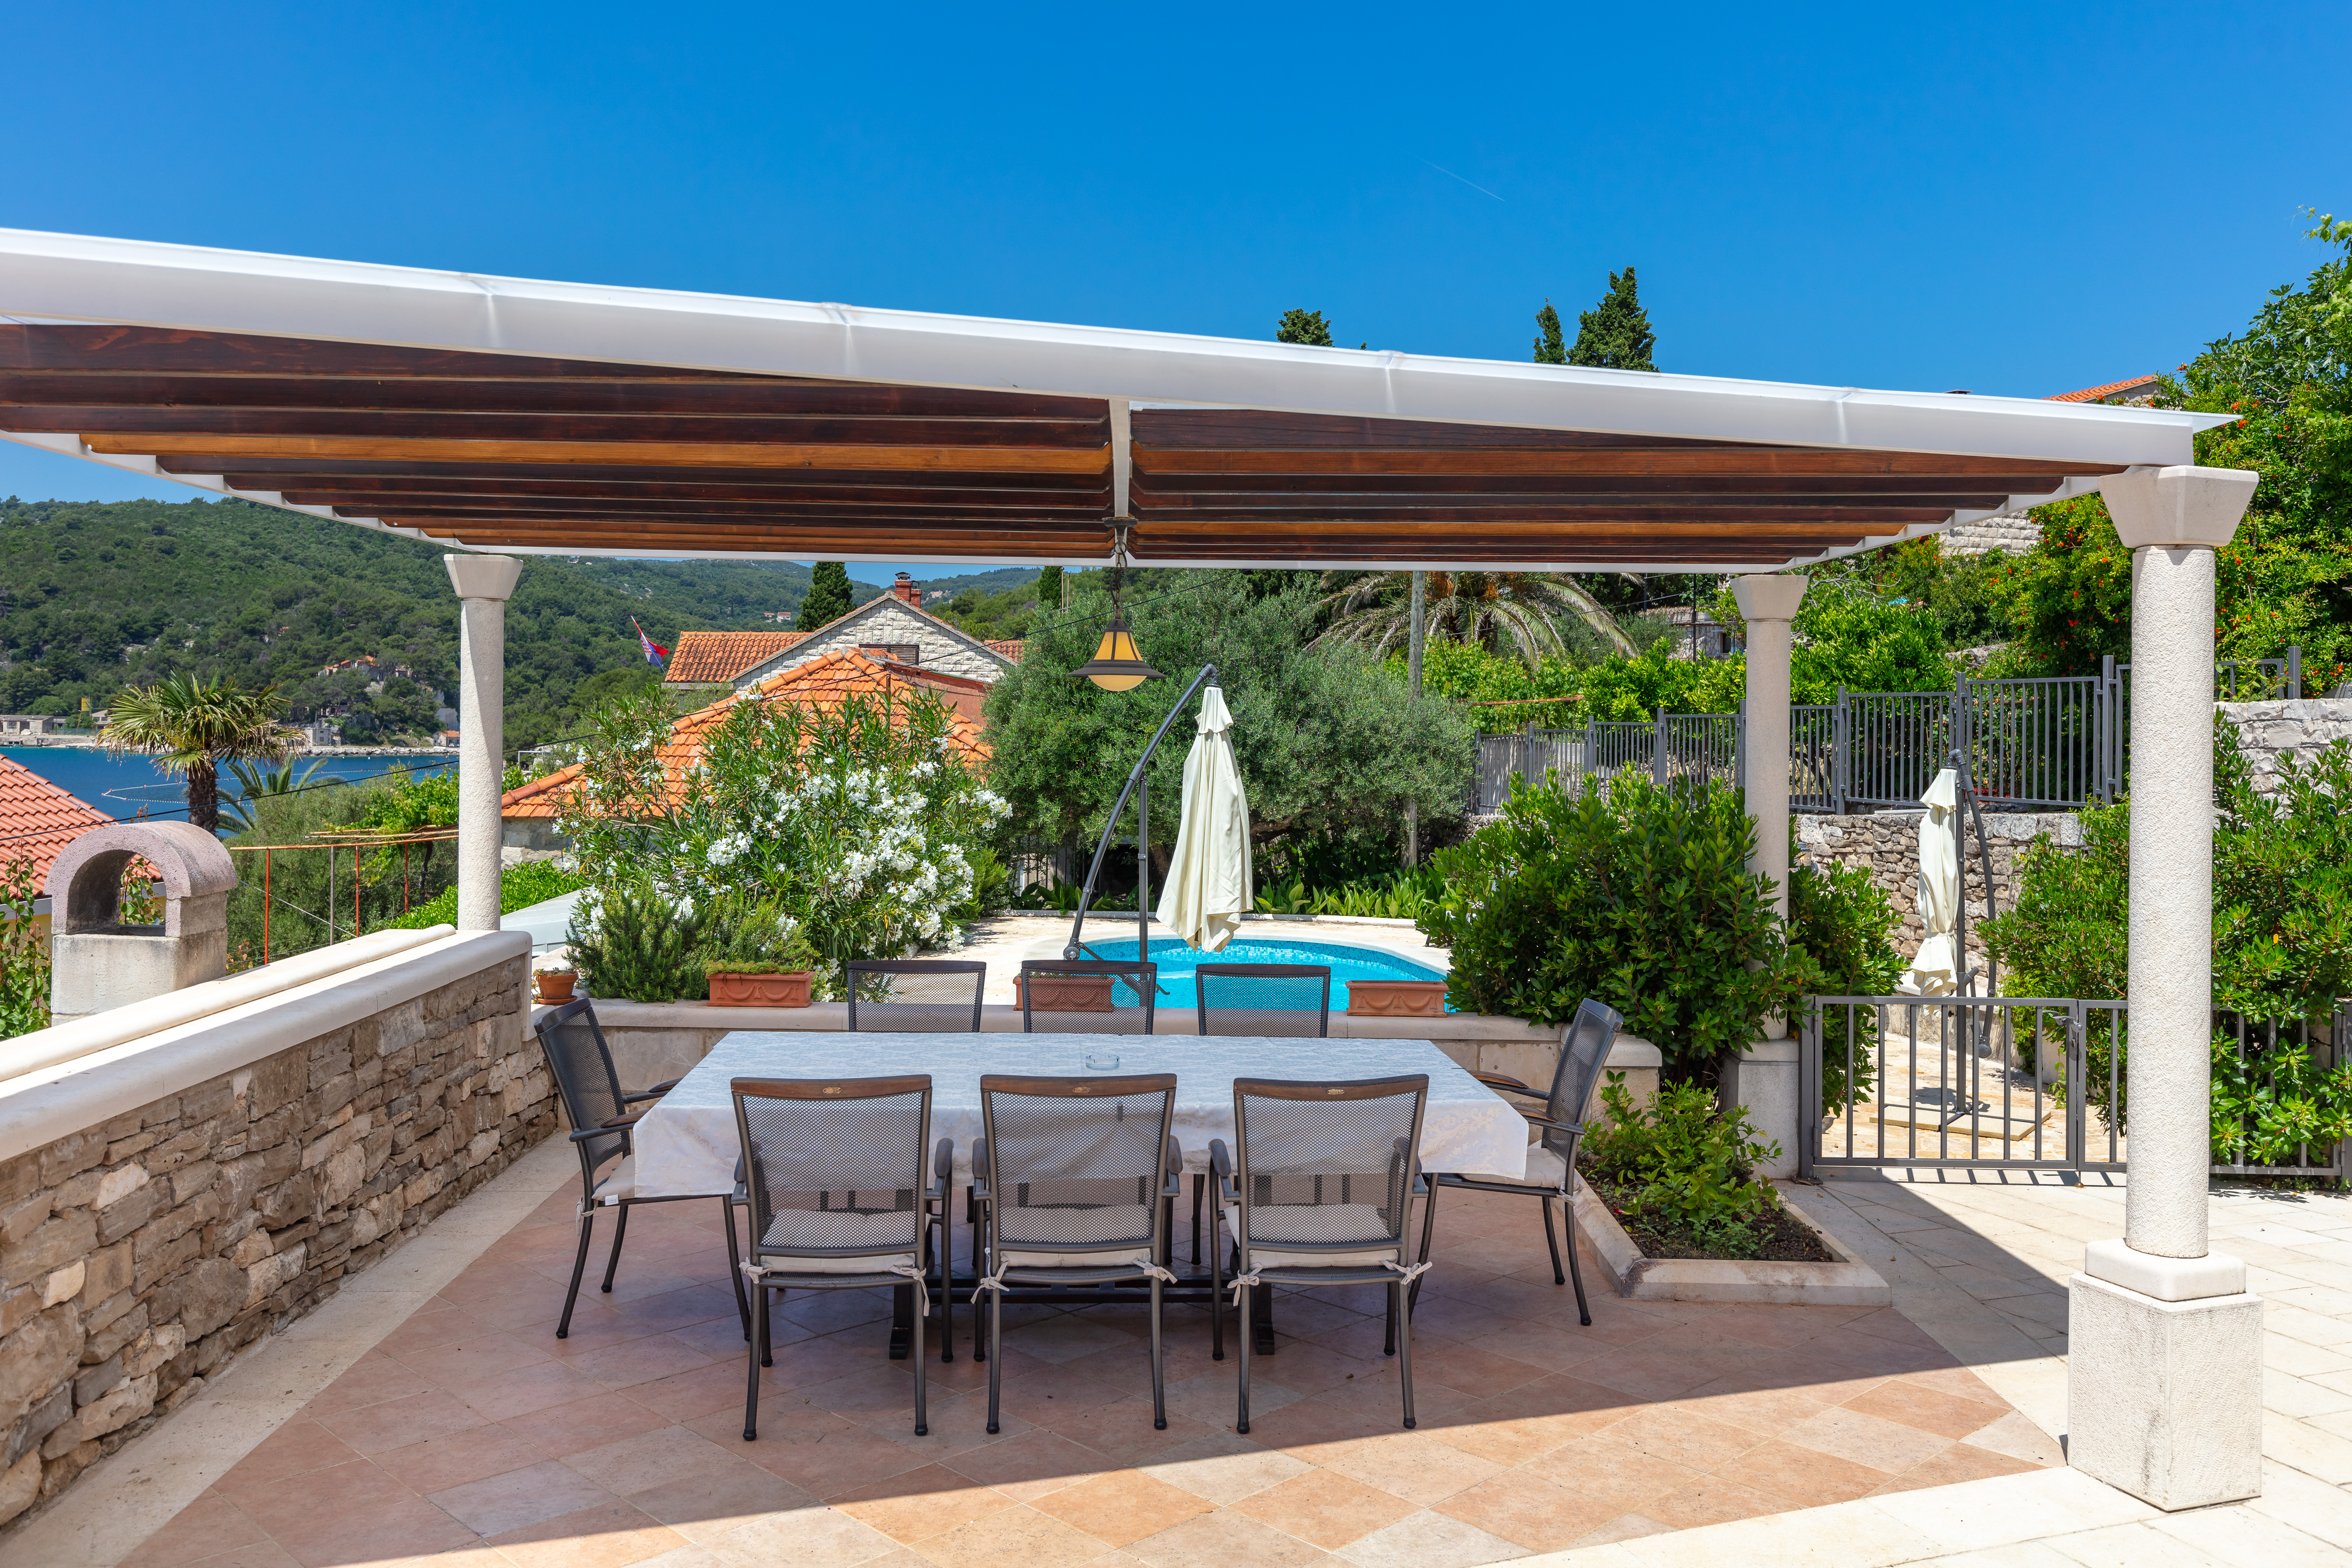 Covered outside dining area with swimming pool view